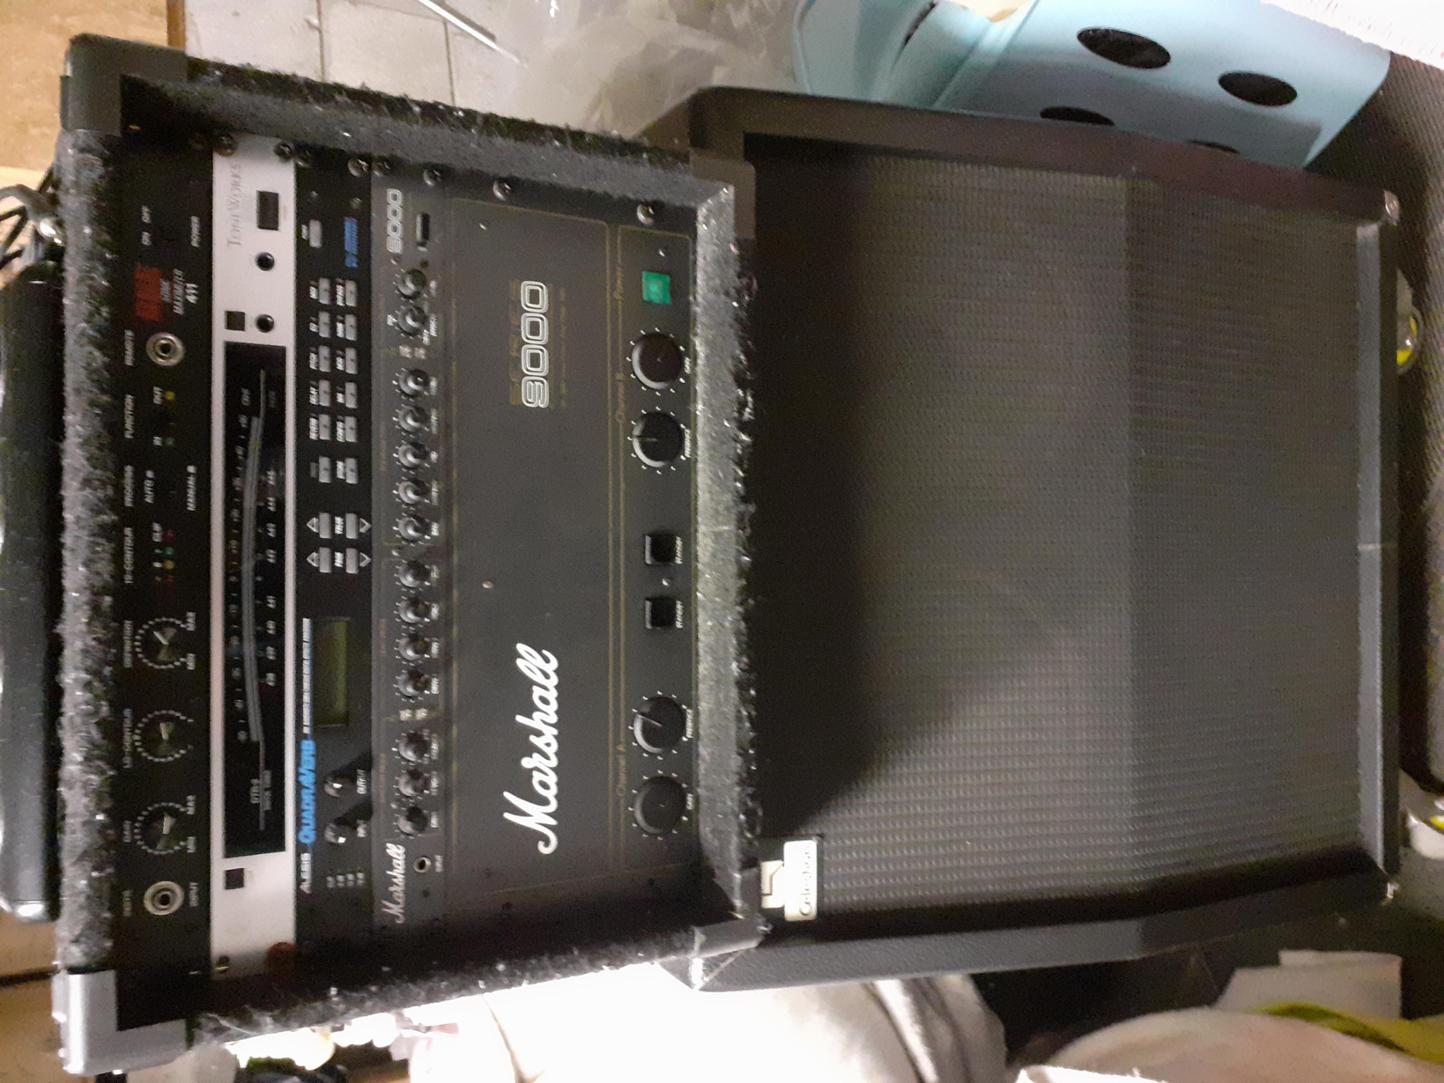 Marshall Series 9000 rack mount Guitar Pre Amp and Power Amp Effect